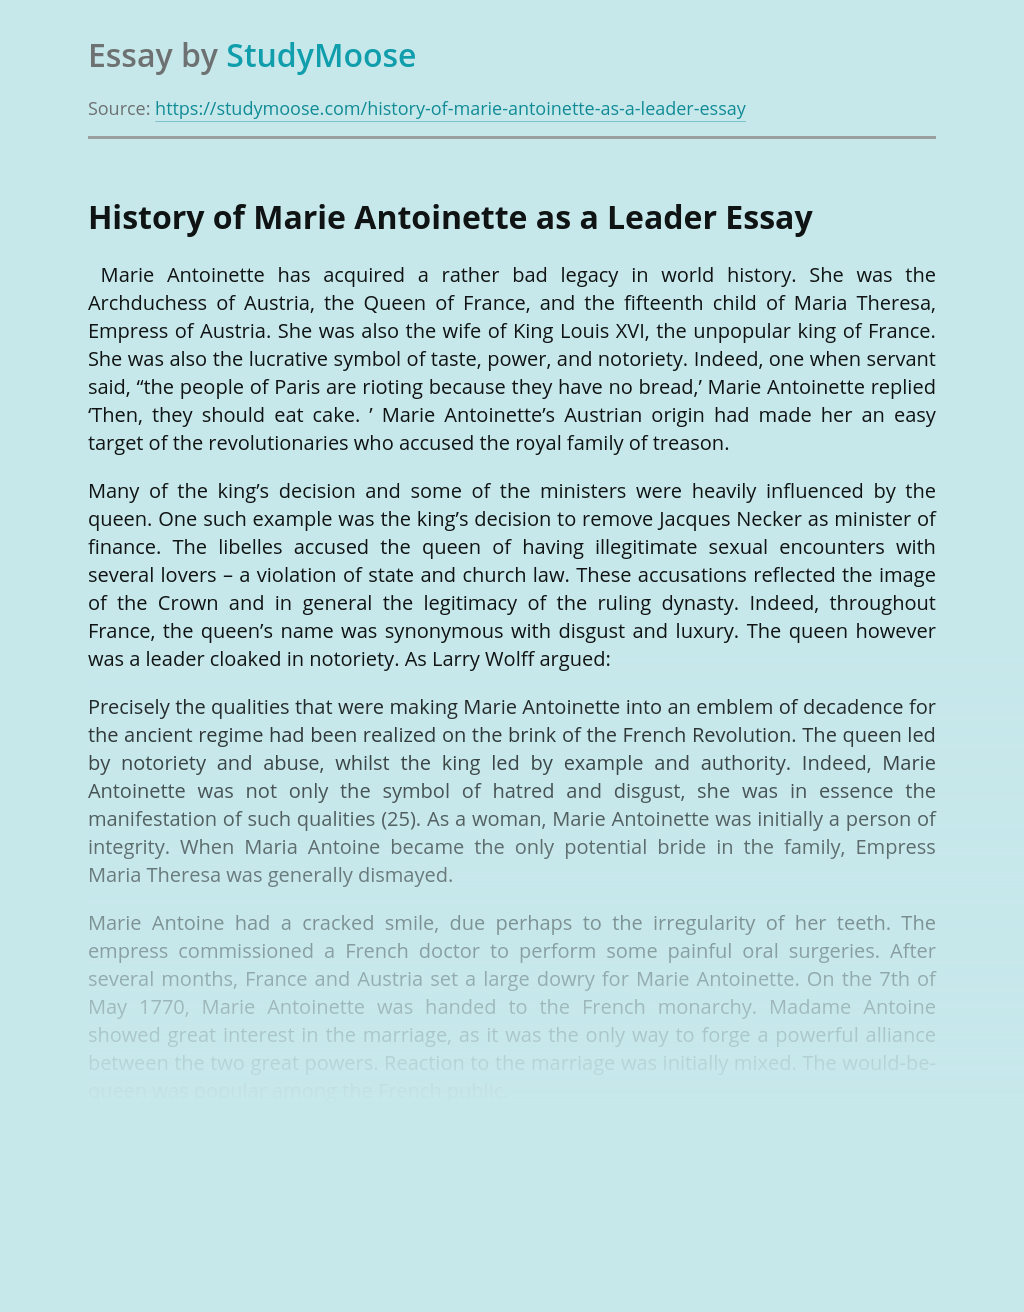 History of Marie Antoinette as a Leader